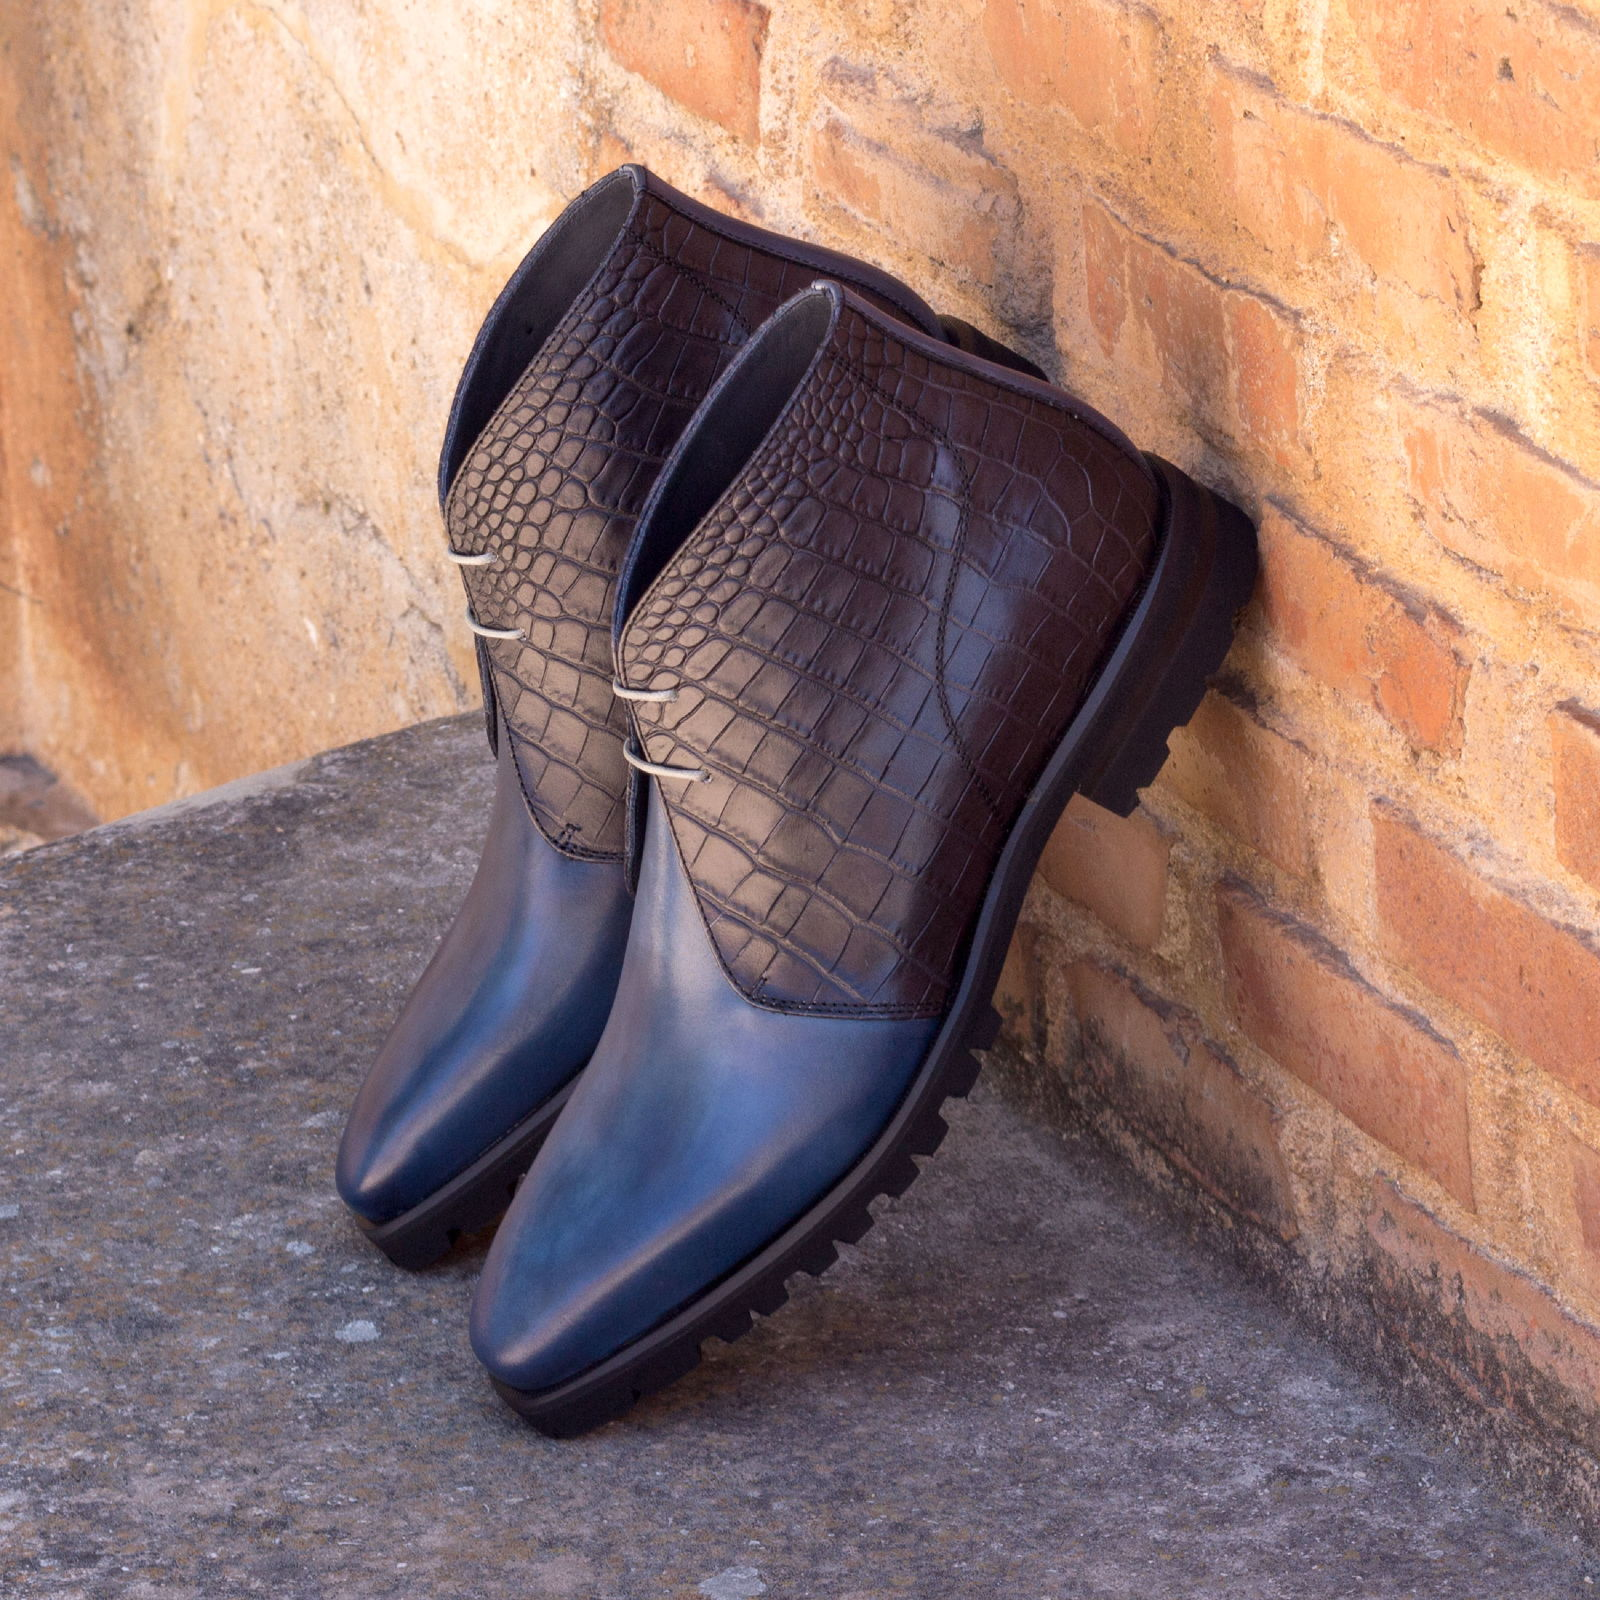 Chukka boot croco black + navy painted calf : 250€